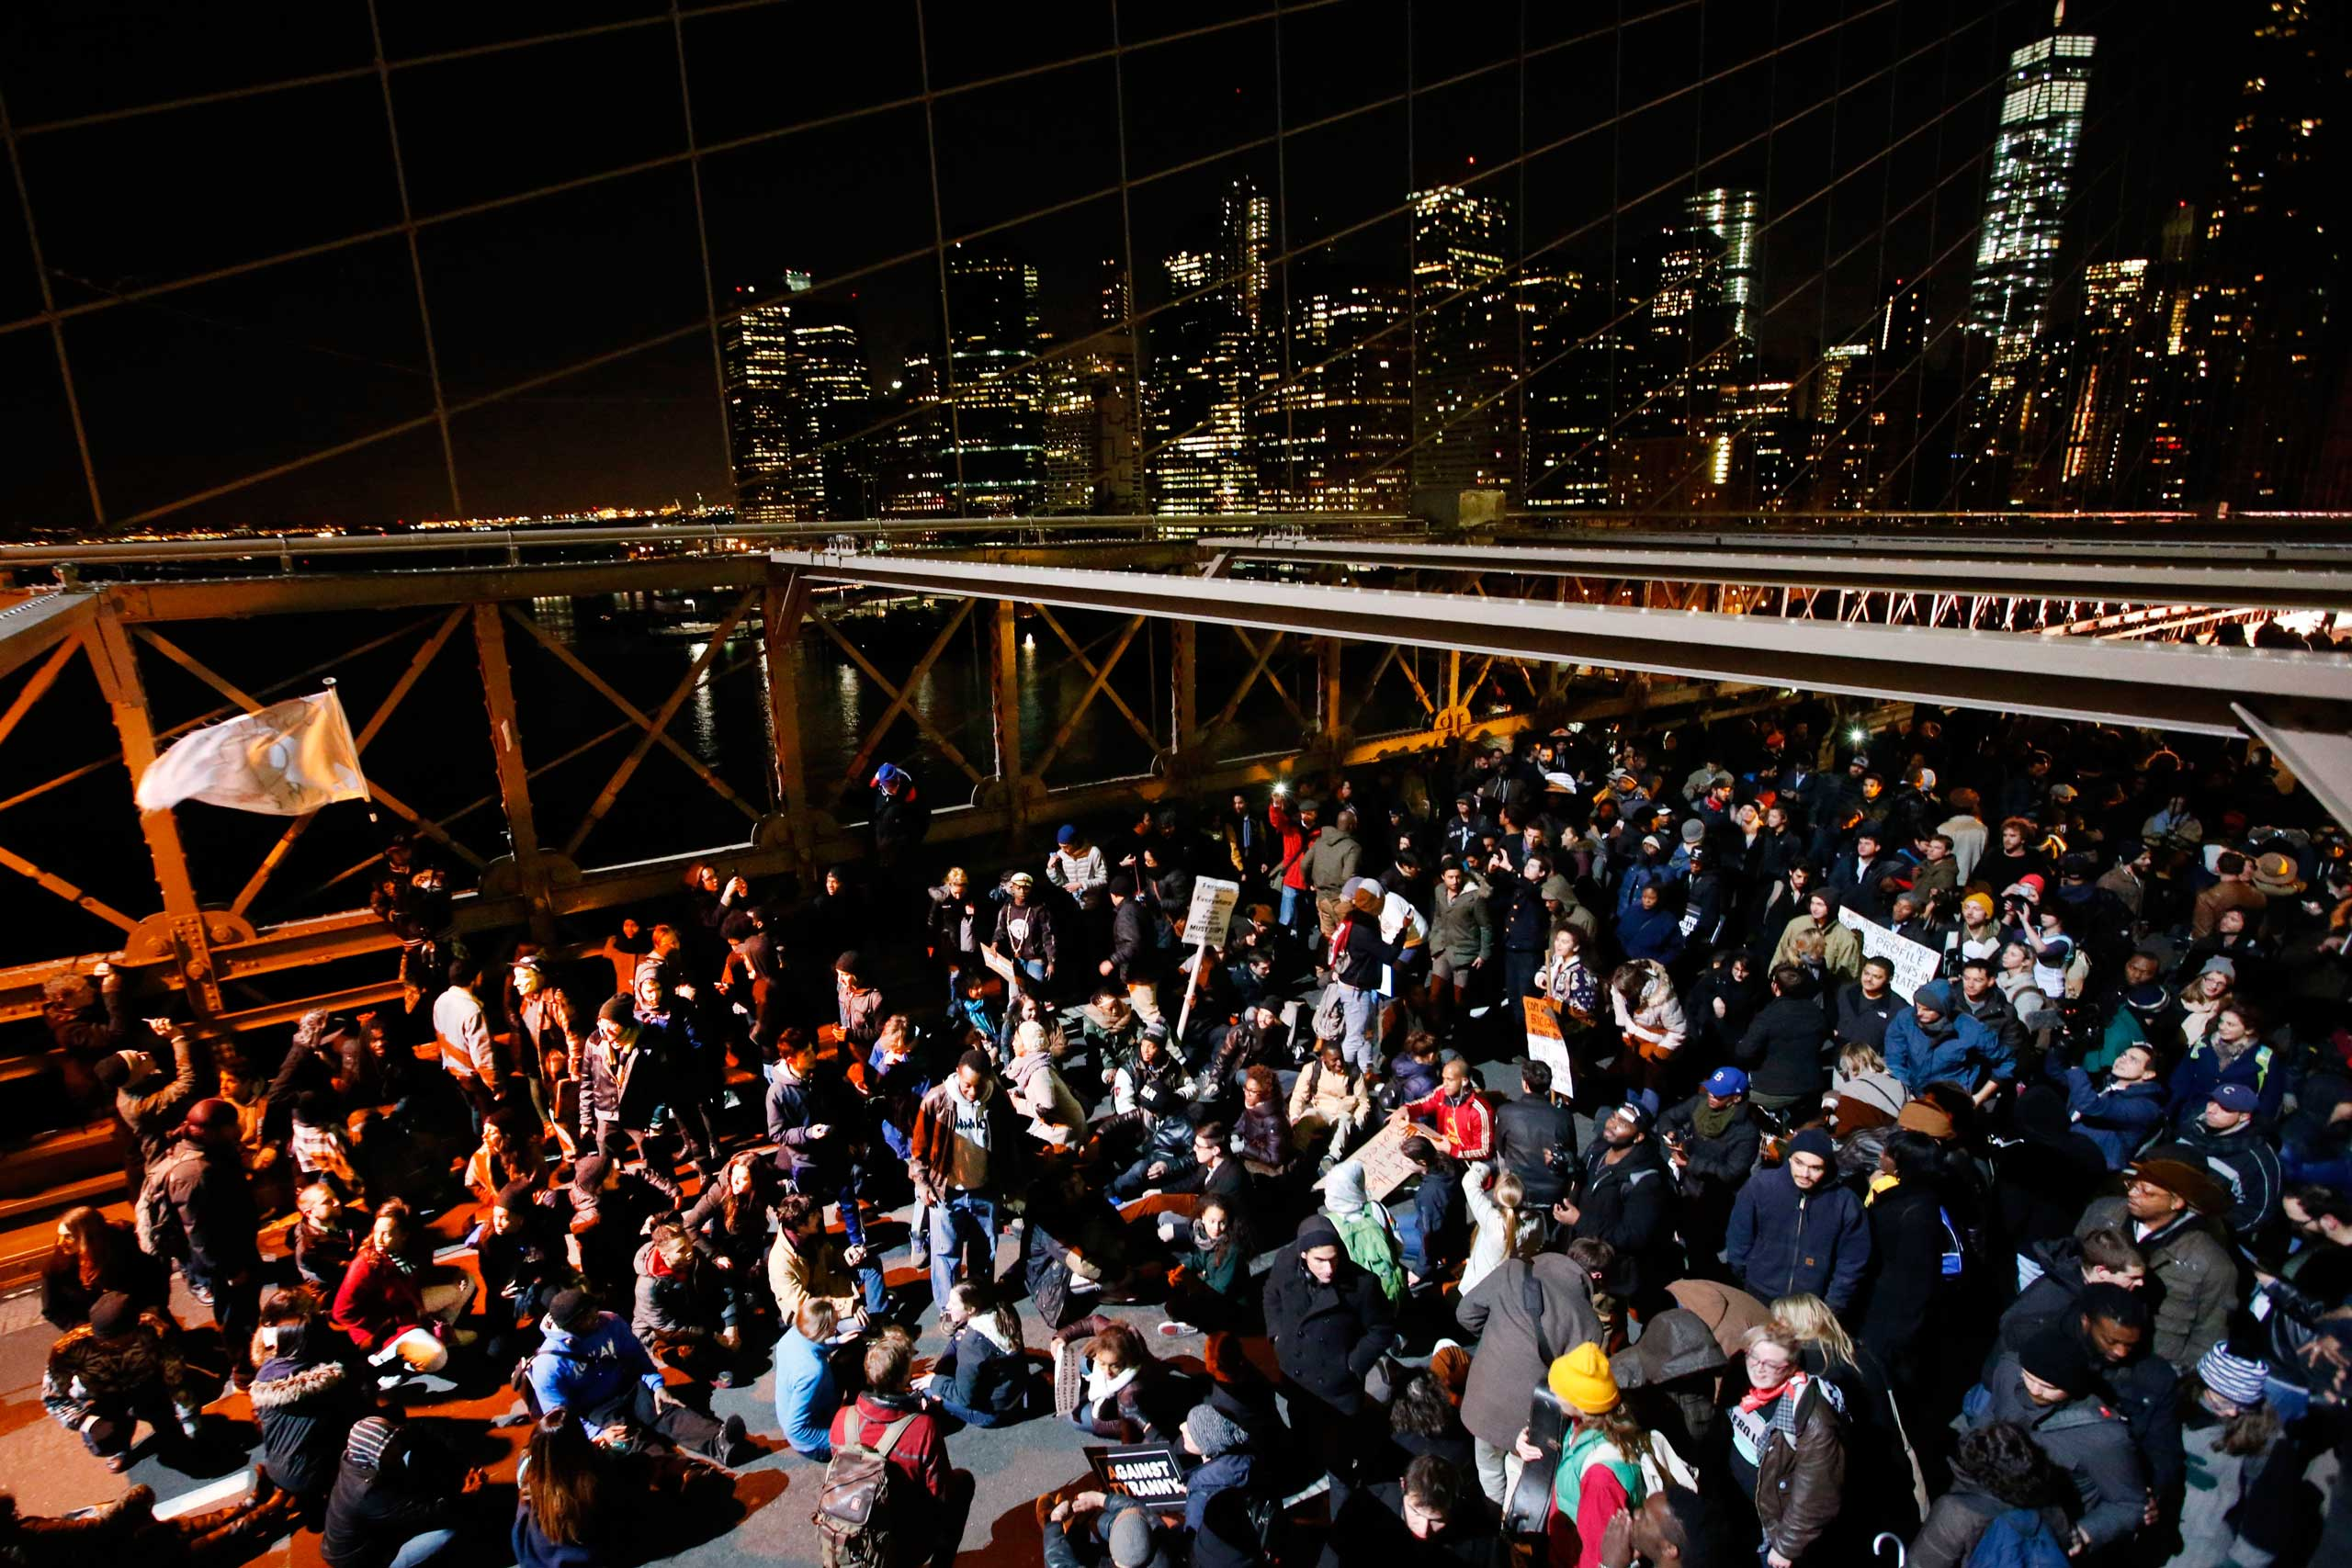 A group of protesters rally against a grand jury's decision not to indict the police officer involved in the death of Eric Garner occupy the eastbound traffic lanes of the Brooklyn Bridge in  New York City in the early morning hours of Dec. 4, 2014.